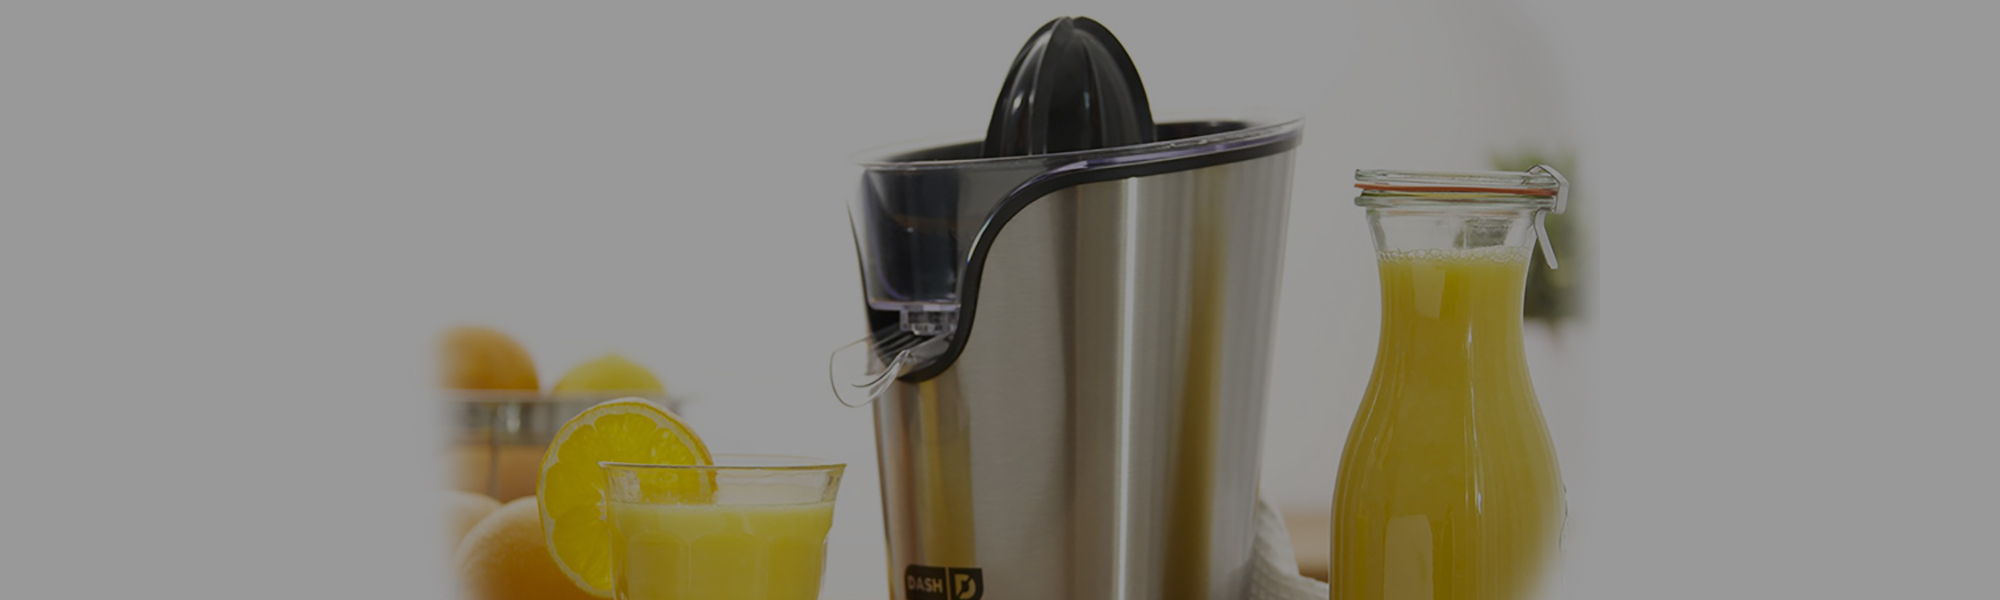 Maximatic ETS-401 Elite<br>20 Ounce Citrus Juicer